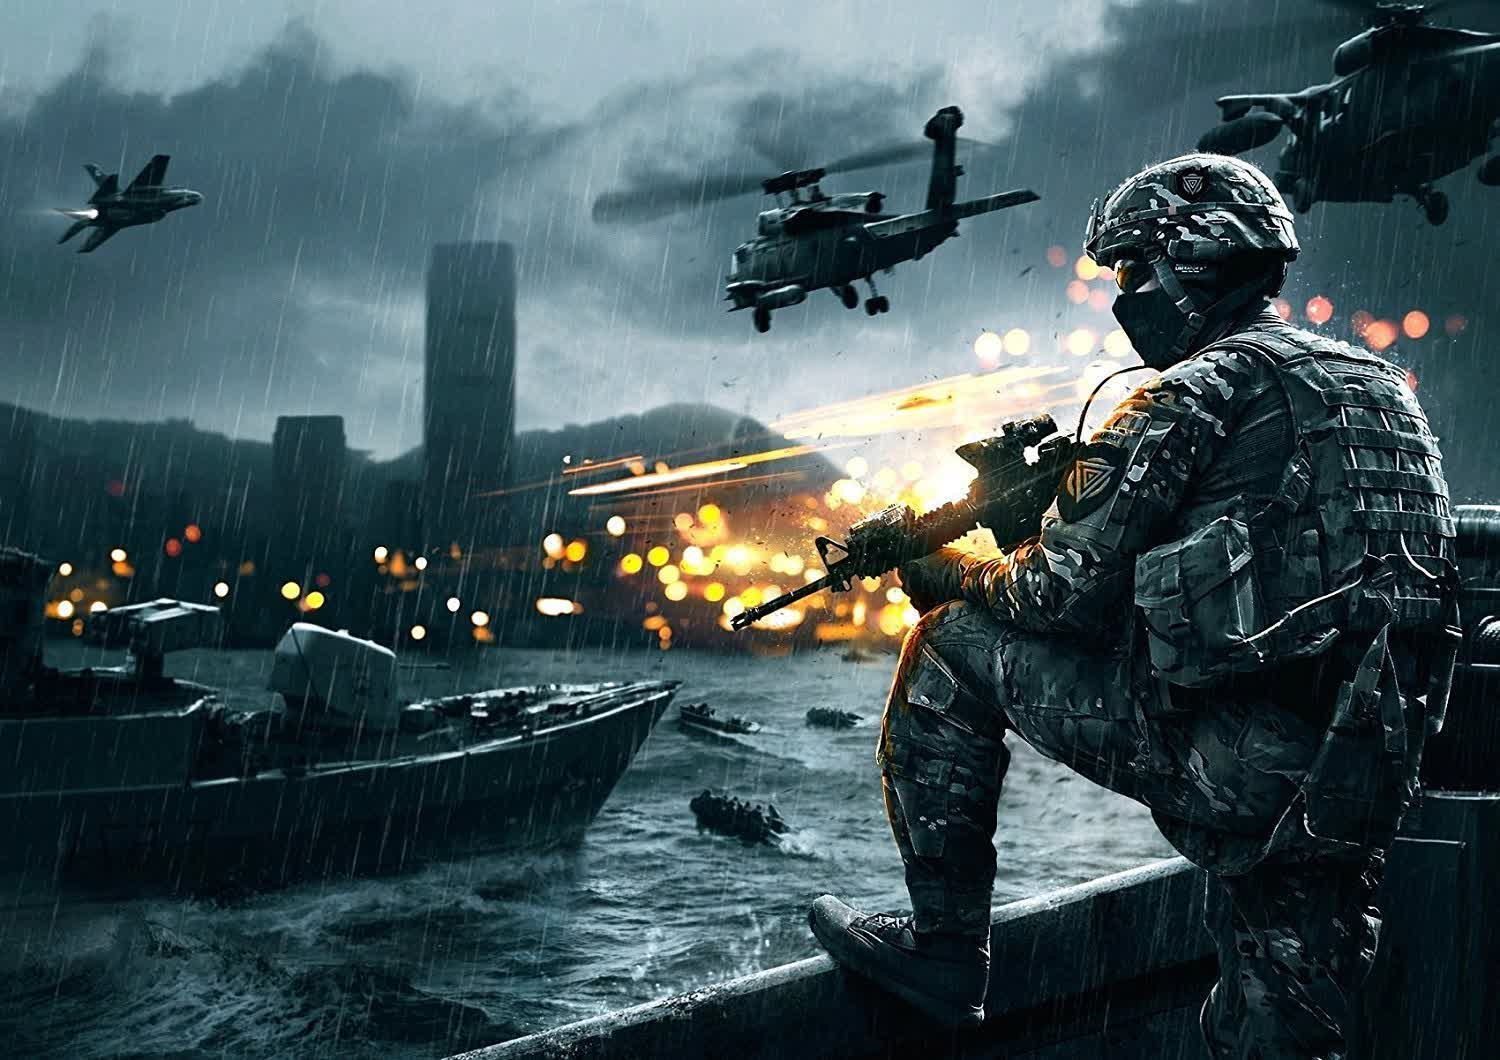 Battlefield 4 has so many players right now that EA had to increase server capacity